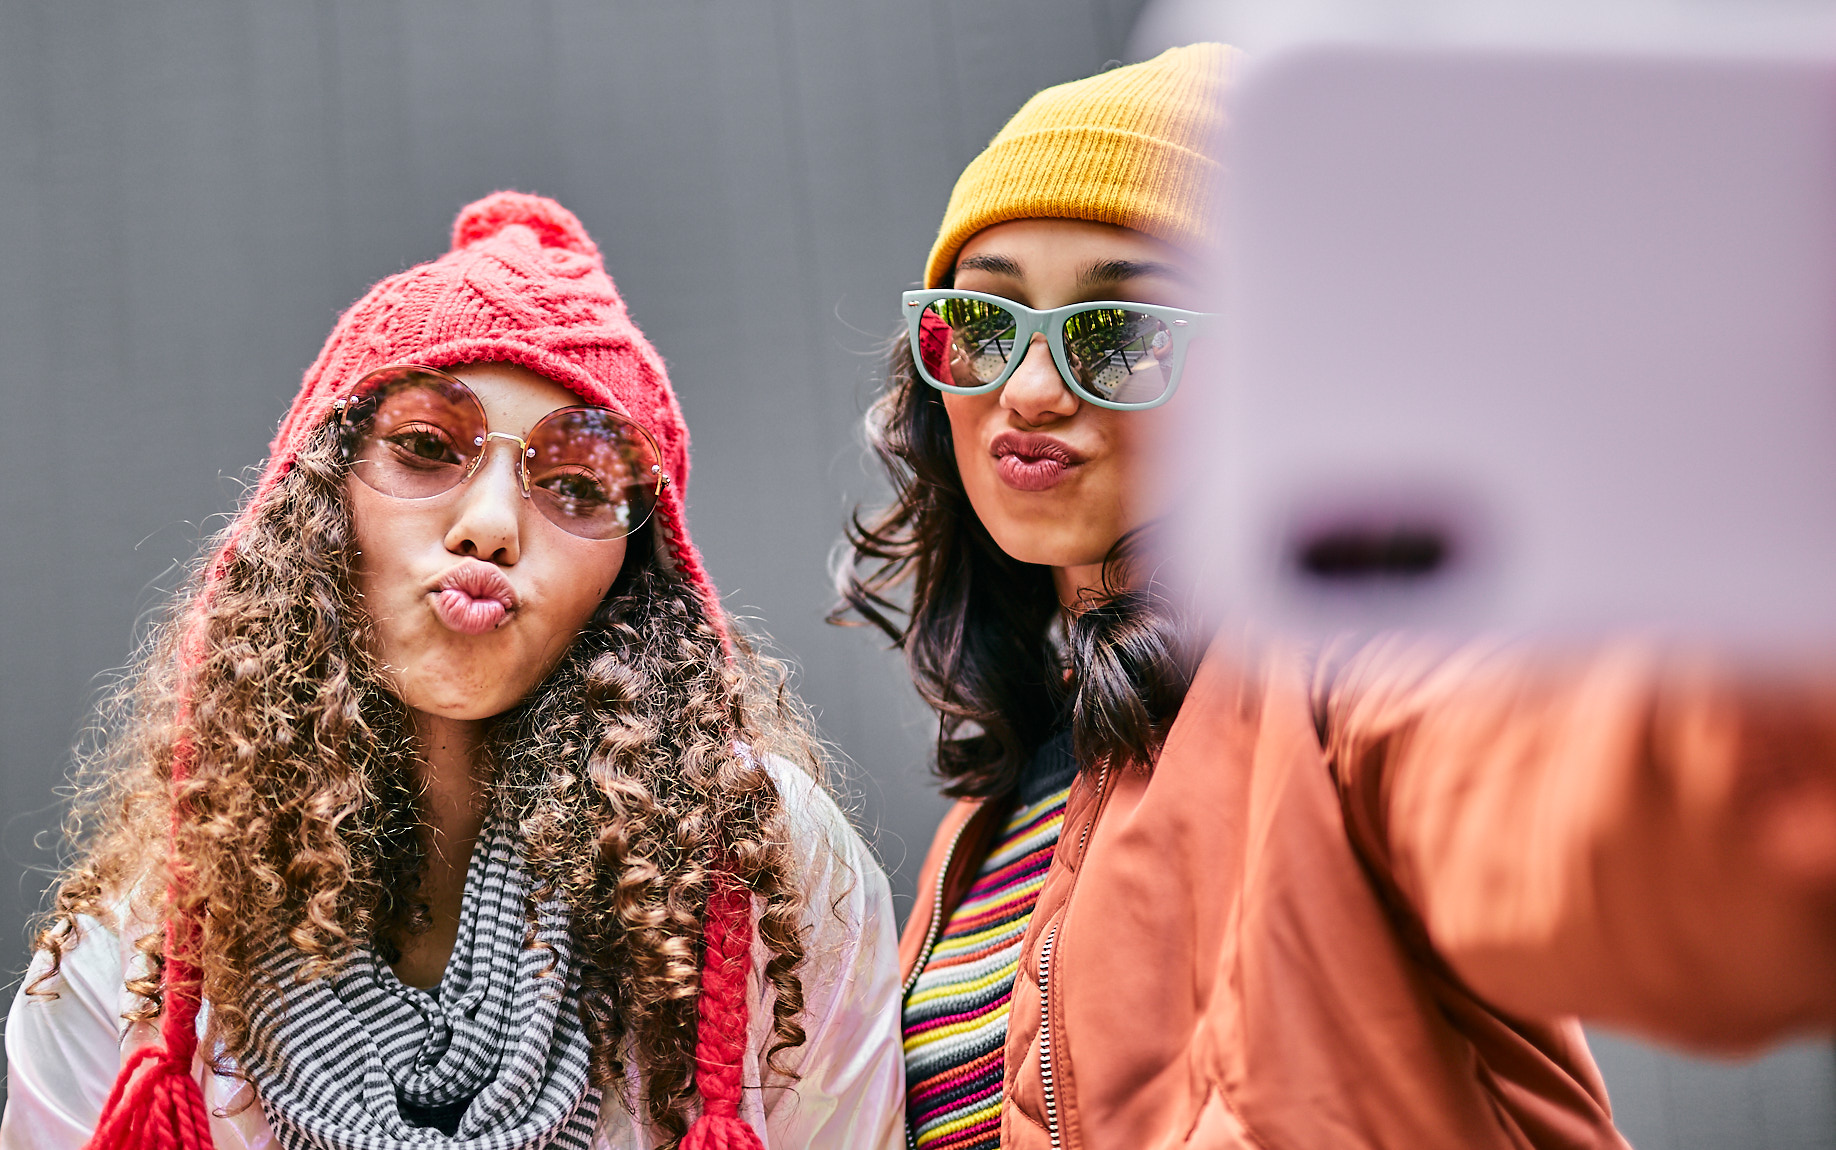 Teenagers take a selfie, an image from a lifestyle photoshoot for screentime management company Circle.